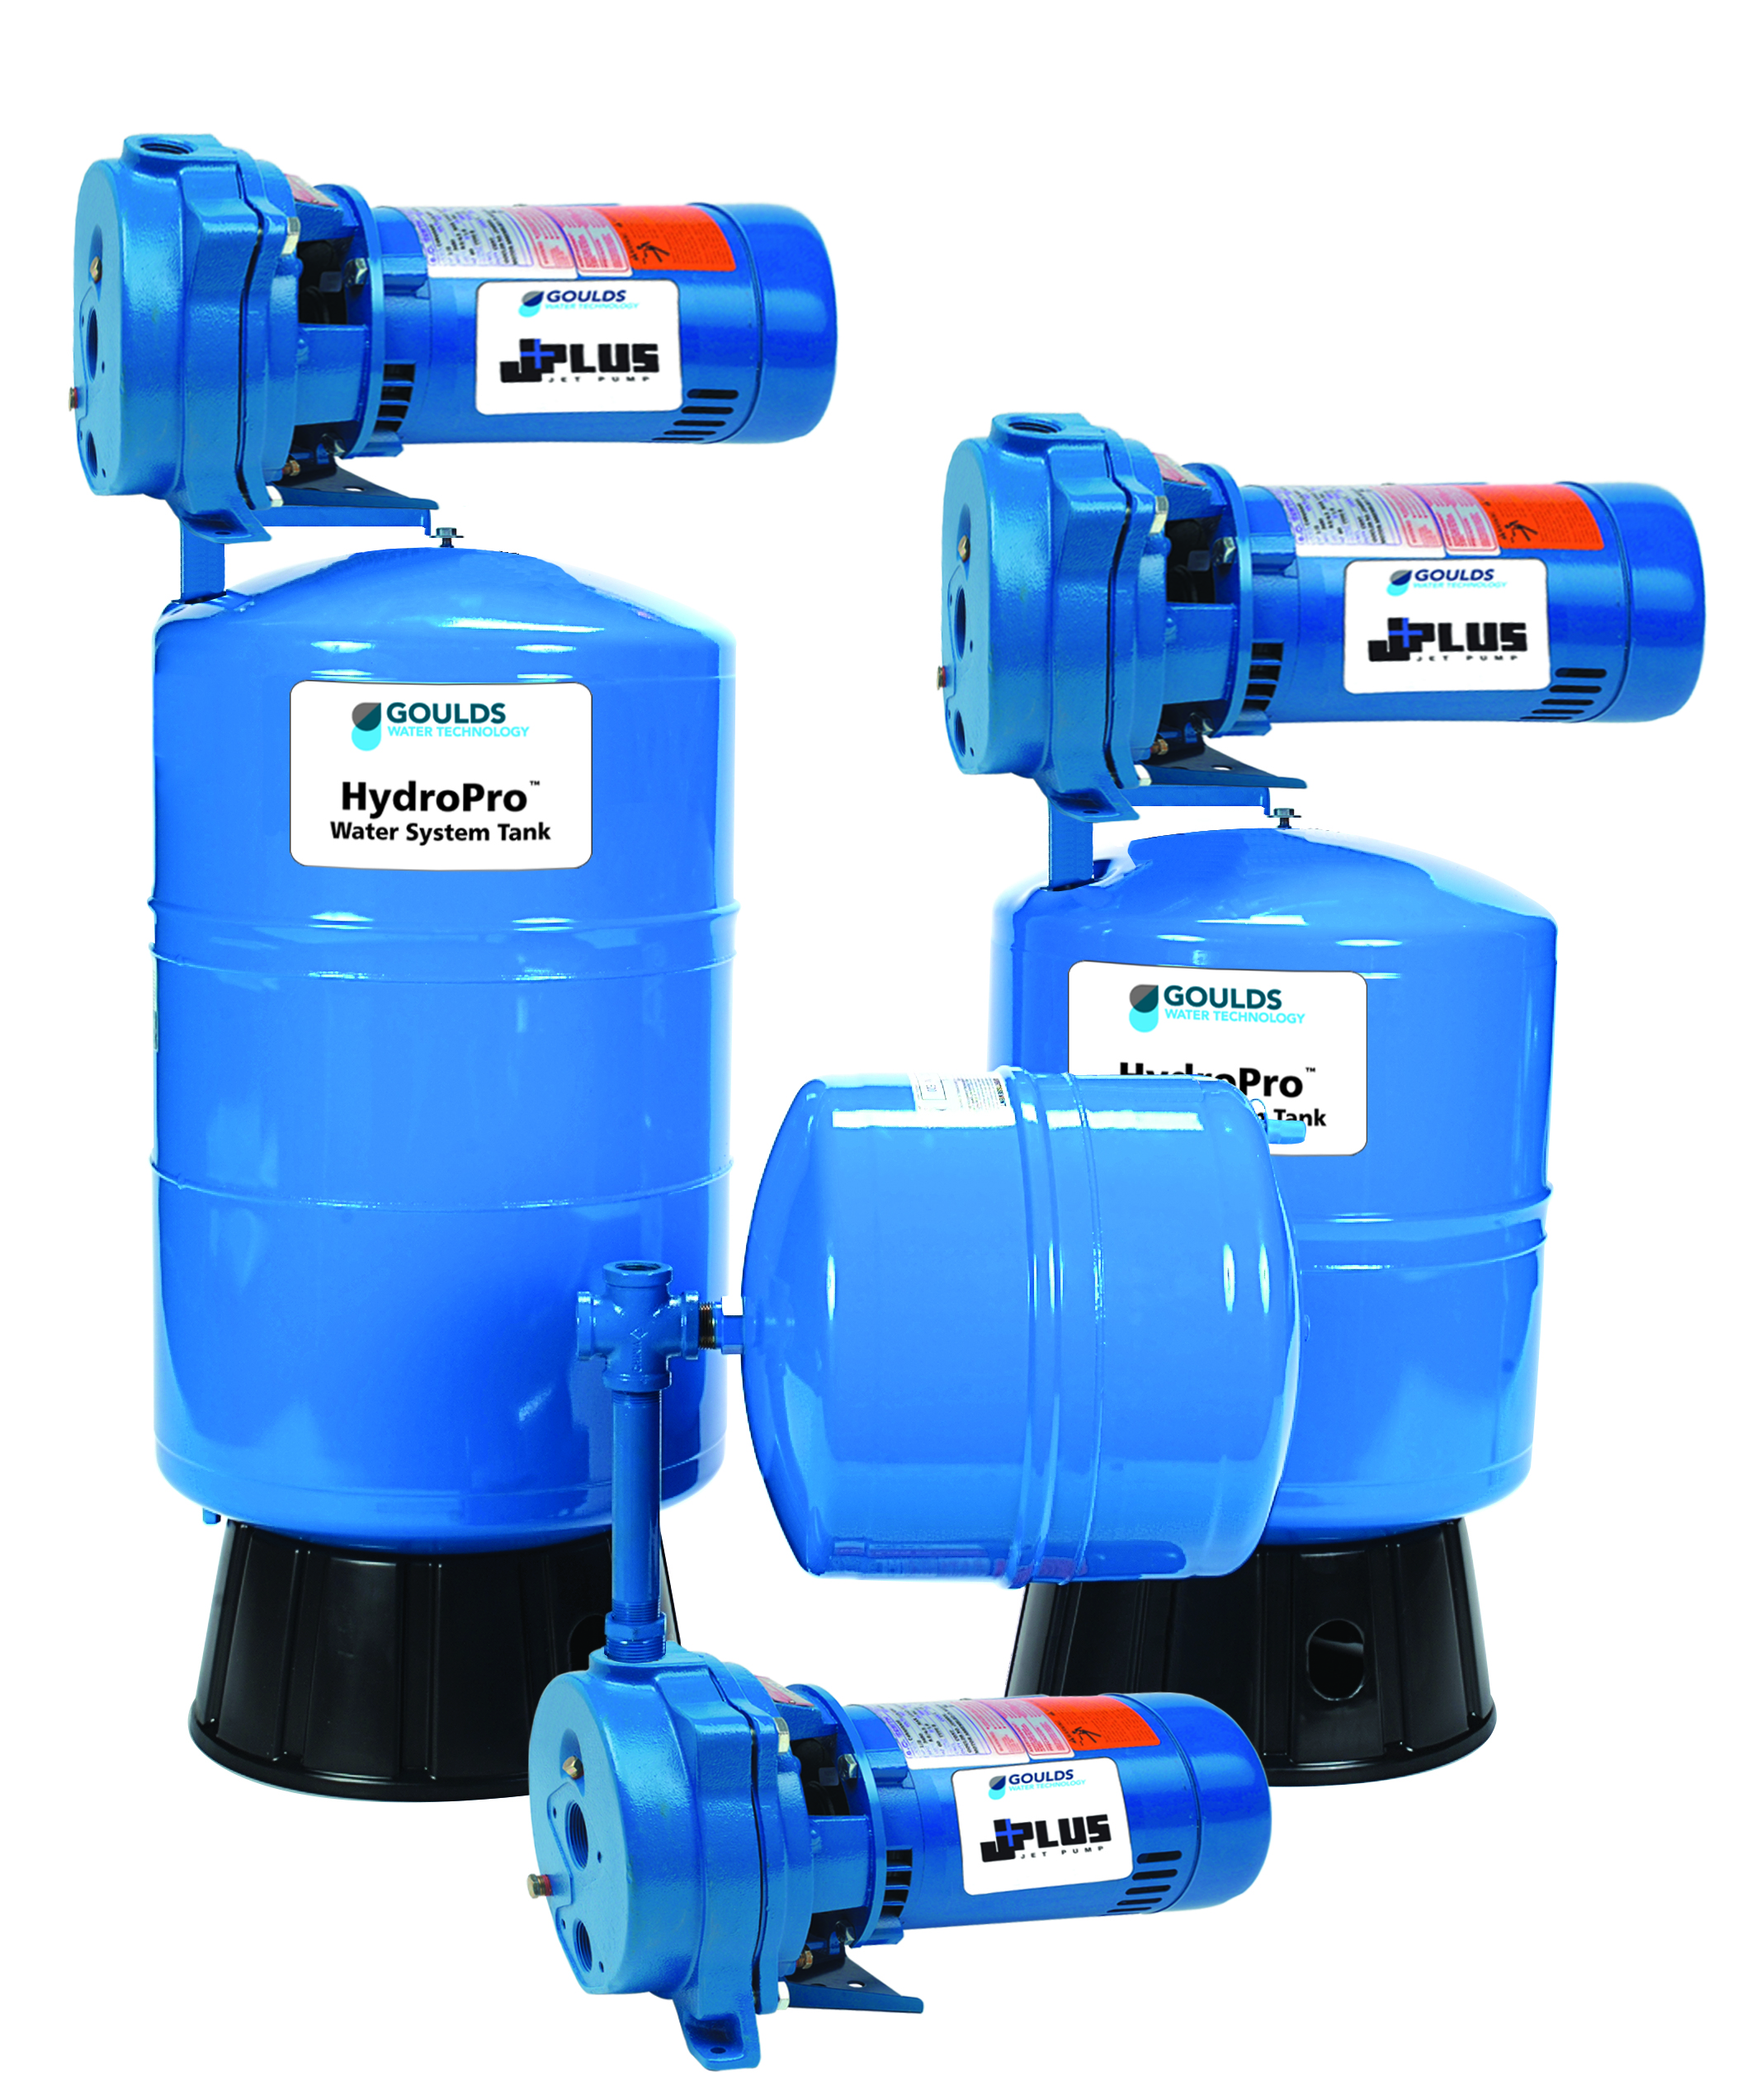 Submersible Pumps: Veeder Root Red Jacket Submersible Pumps on